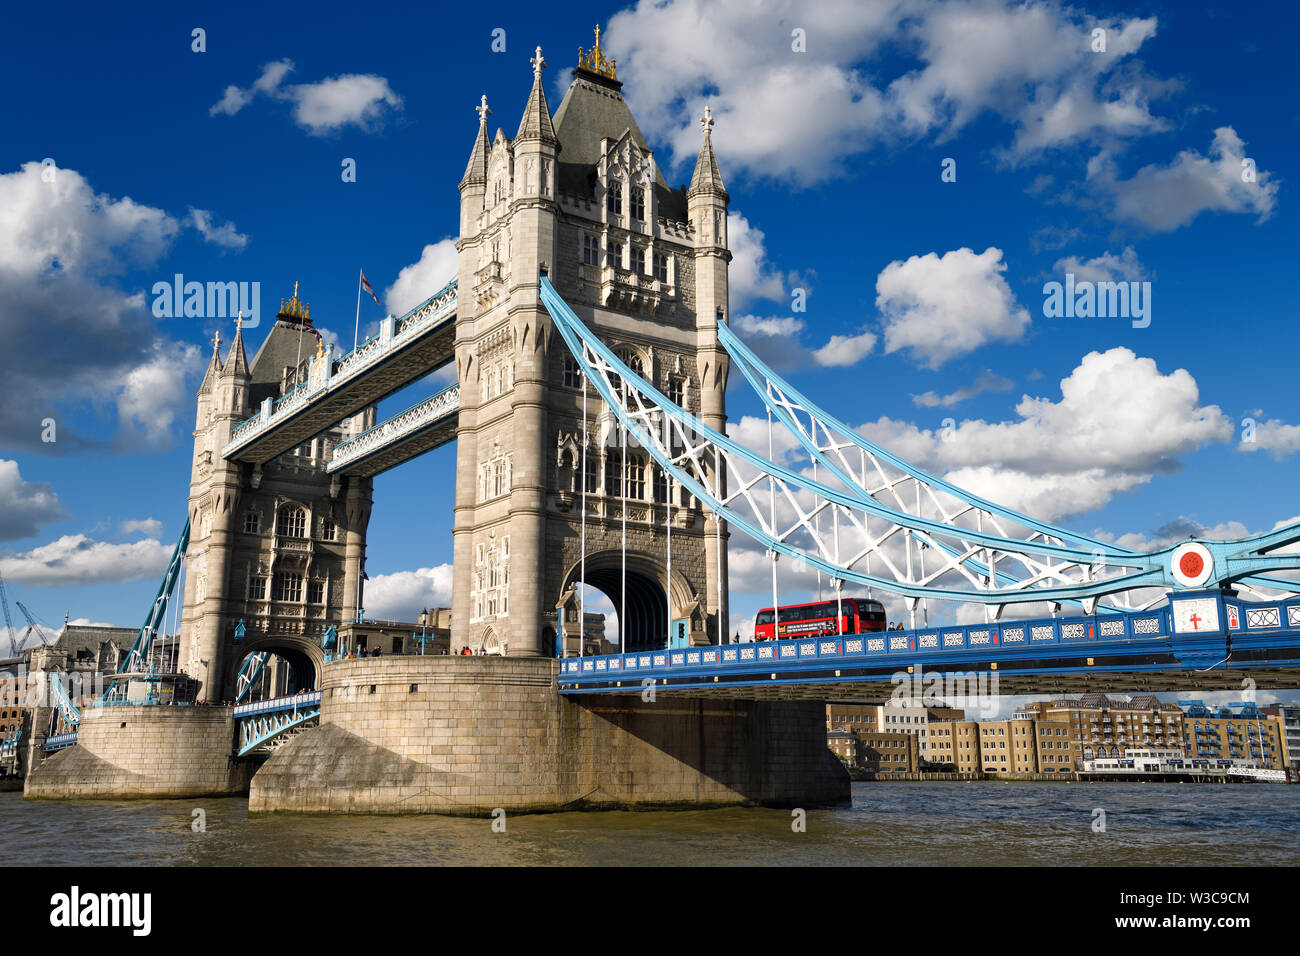 Twin stone towers of Tower Bridge over the Thames River in